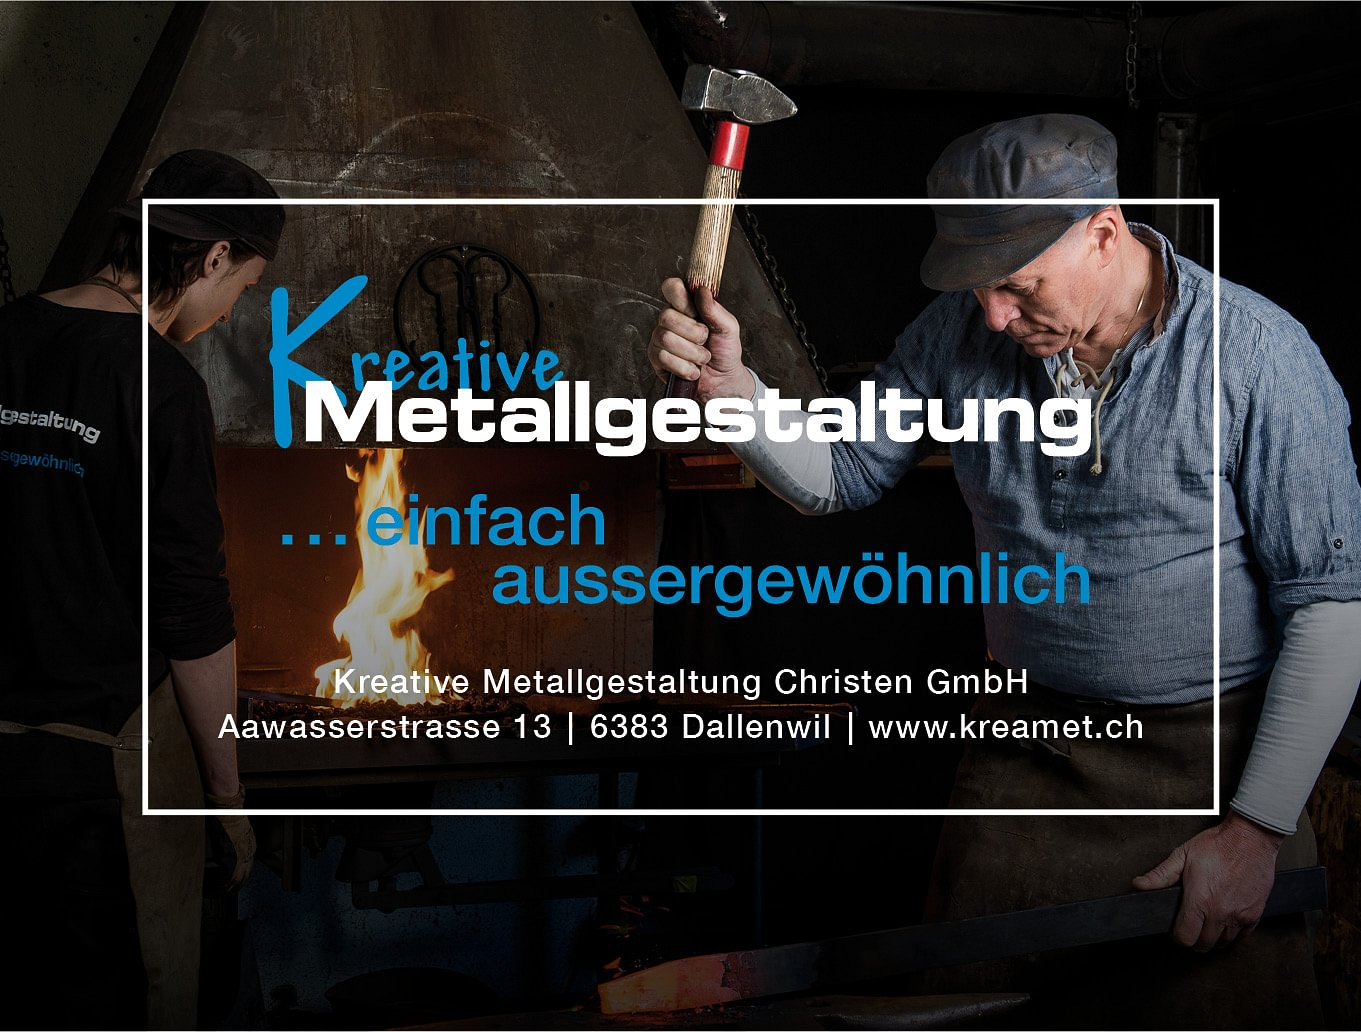 Kreative Metallgestaltung Christen